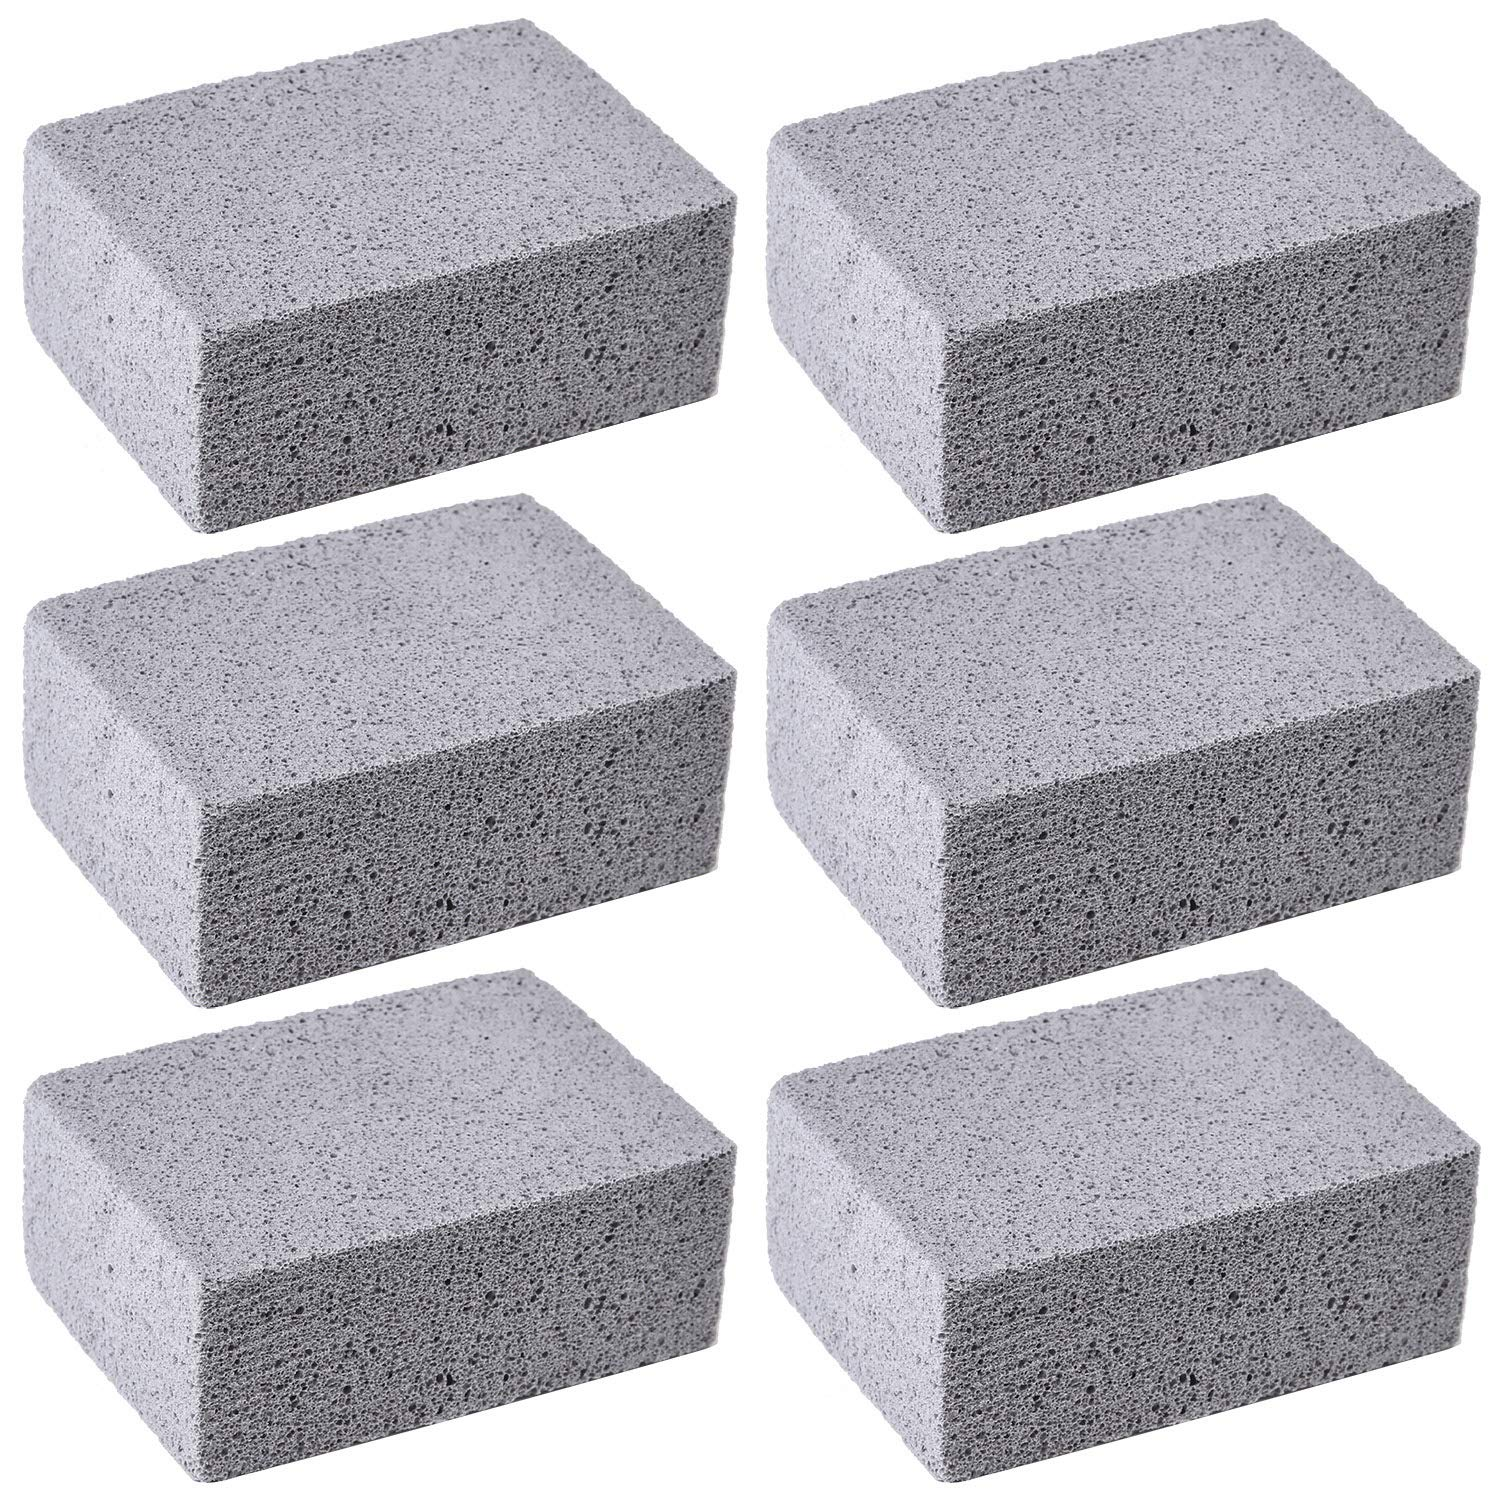 Elcoho 6 Pack Grill Griddle Cleaning Brick Block Grill Cleaning Pumice Stones for Cleaning and Removing BBQ Grills, Racks, Flat Top Cookers (6)